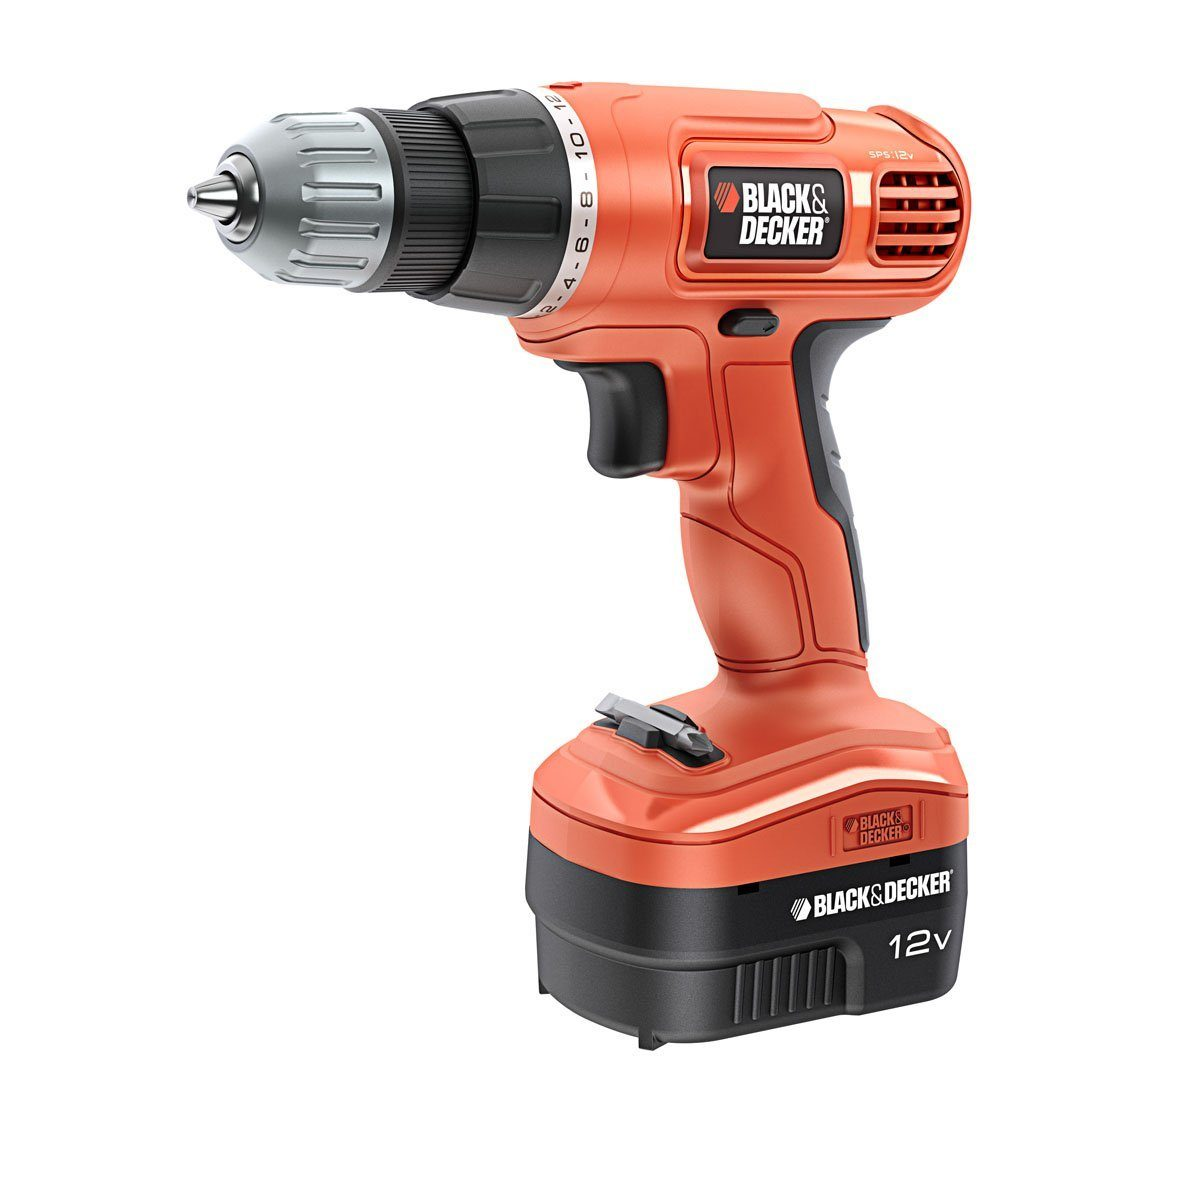 Perceuse simple sans fil Black & Decker